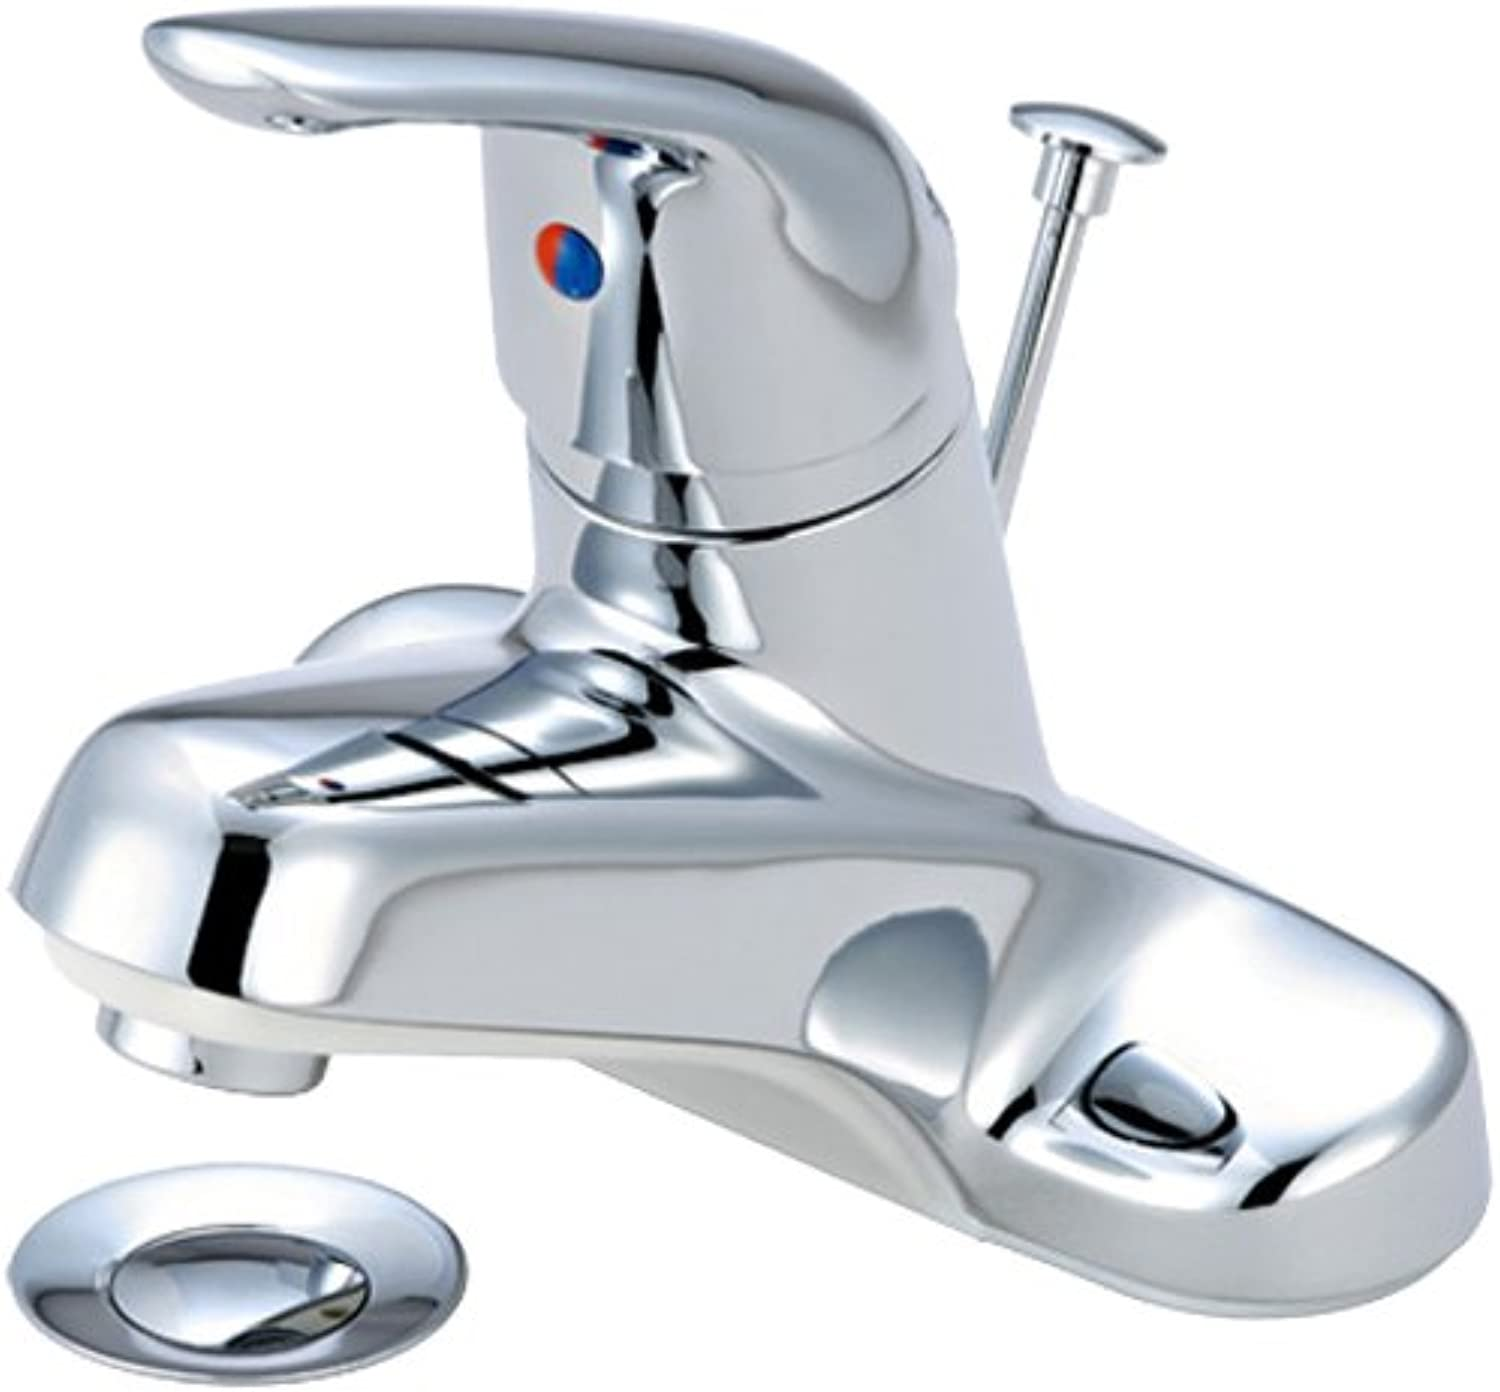 Aviditi Olympia Series L-6162-E1.5 Elite Single Handle Lavatory Faucet and Brass Pop-Up Drain Assembly with 1.5 GPM Flow Rate, Chrome